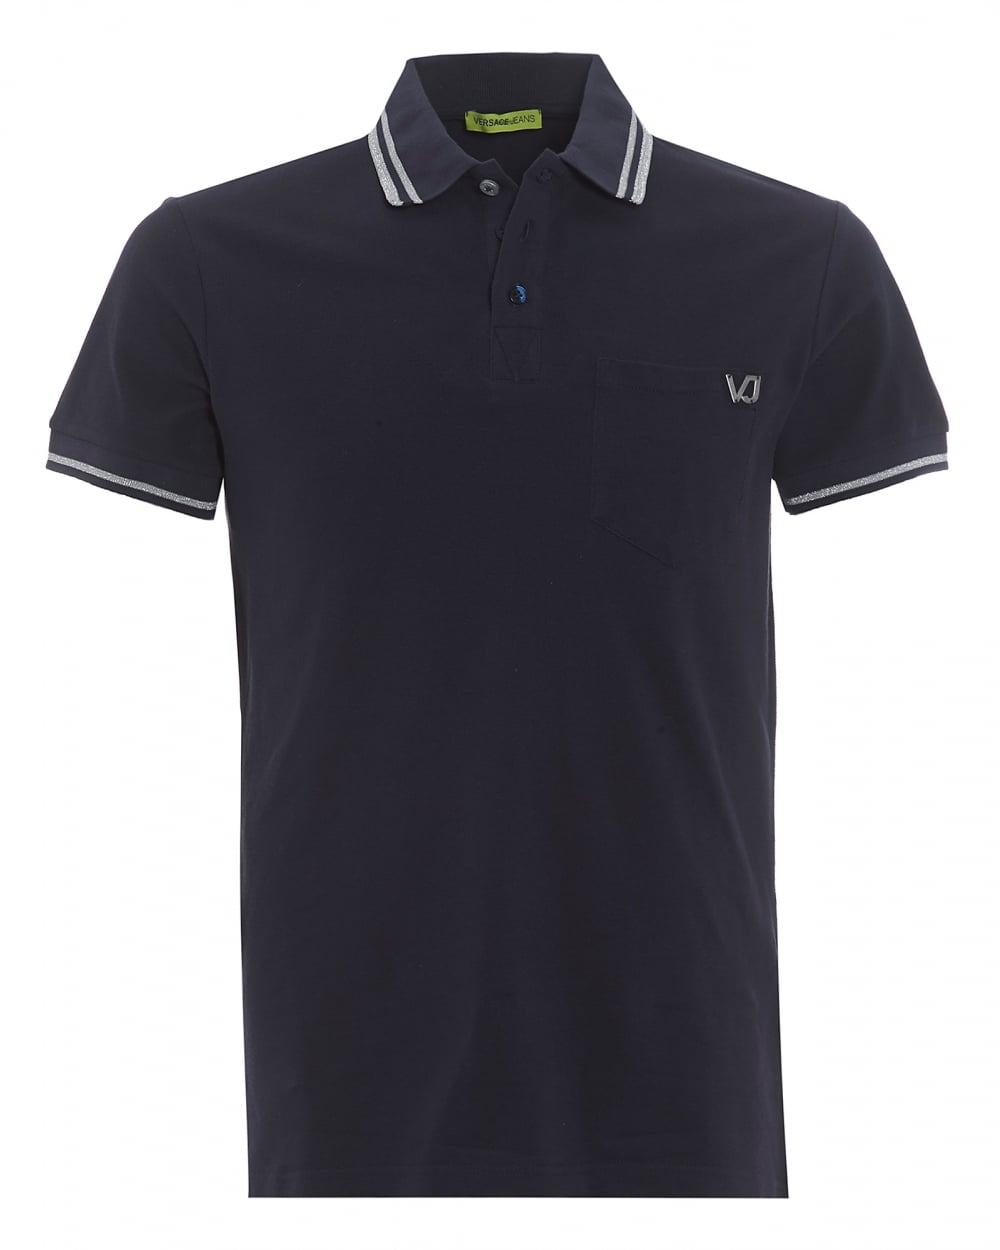 f5dcf9c8 Versace Jeans Mens Tiger Back Polo Shirt, Tipped Navy Blue Polo